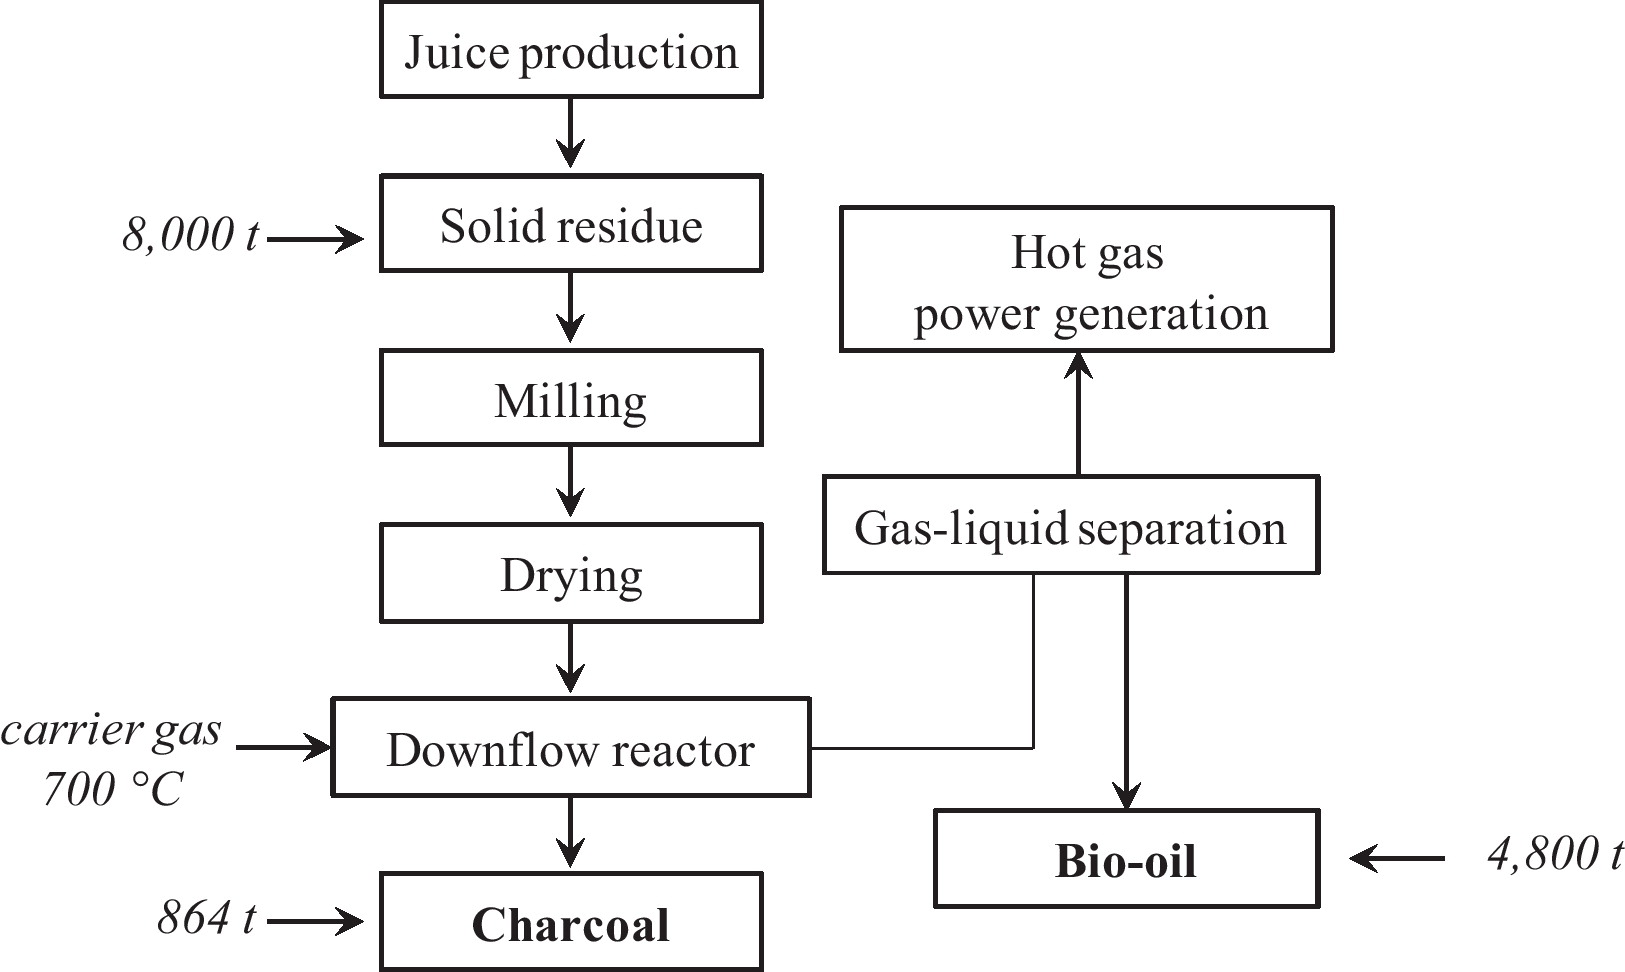 Proposals for the residues recovery orange waste as raw material flowchart showing process involved in bio oil and charcoal production view large image geenschuldenfo Choice Image